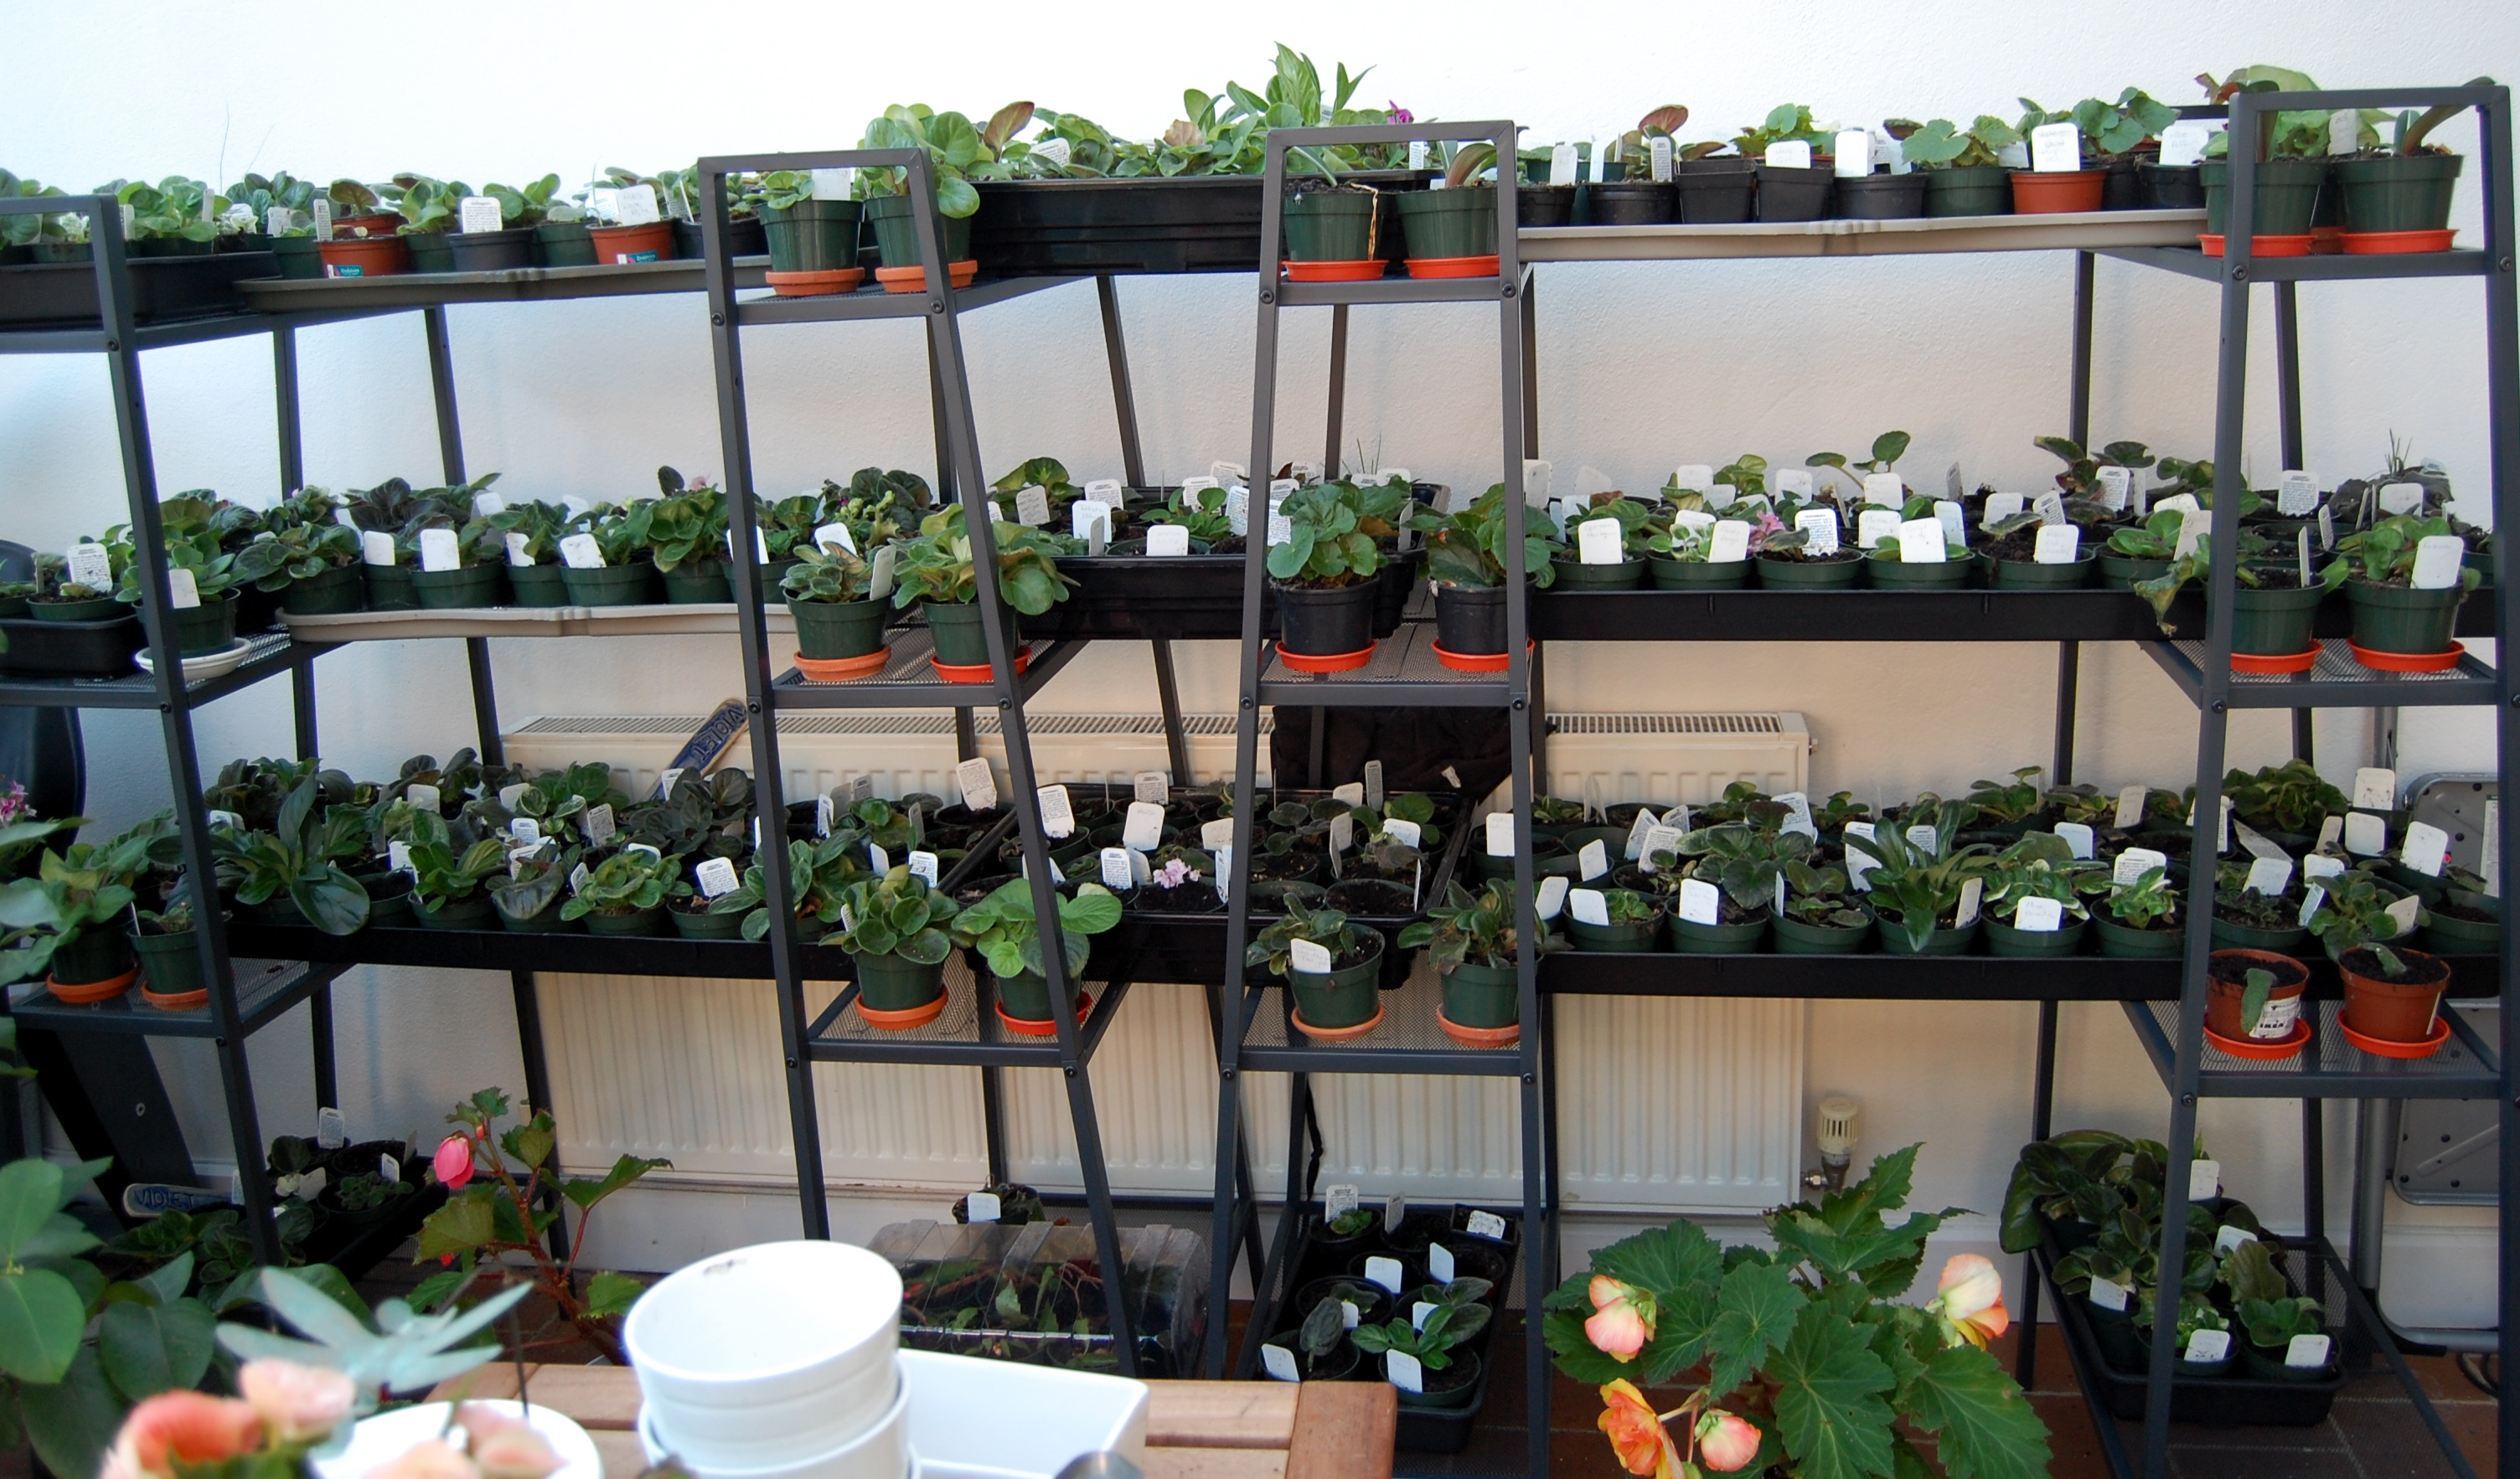 For the astute IKEA fans out there these are the cheapy shelves connected by grow-bag trays.